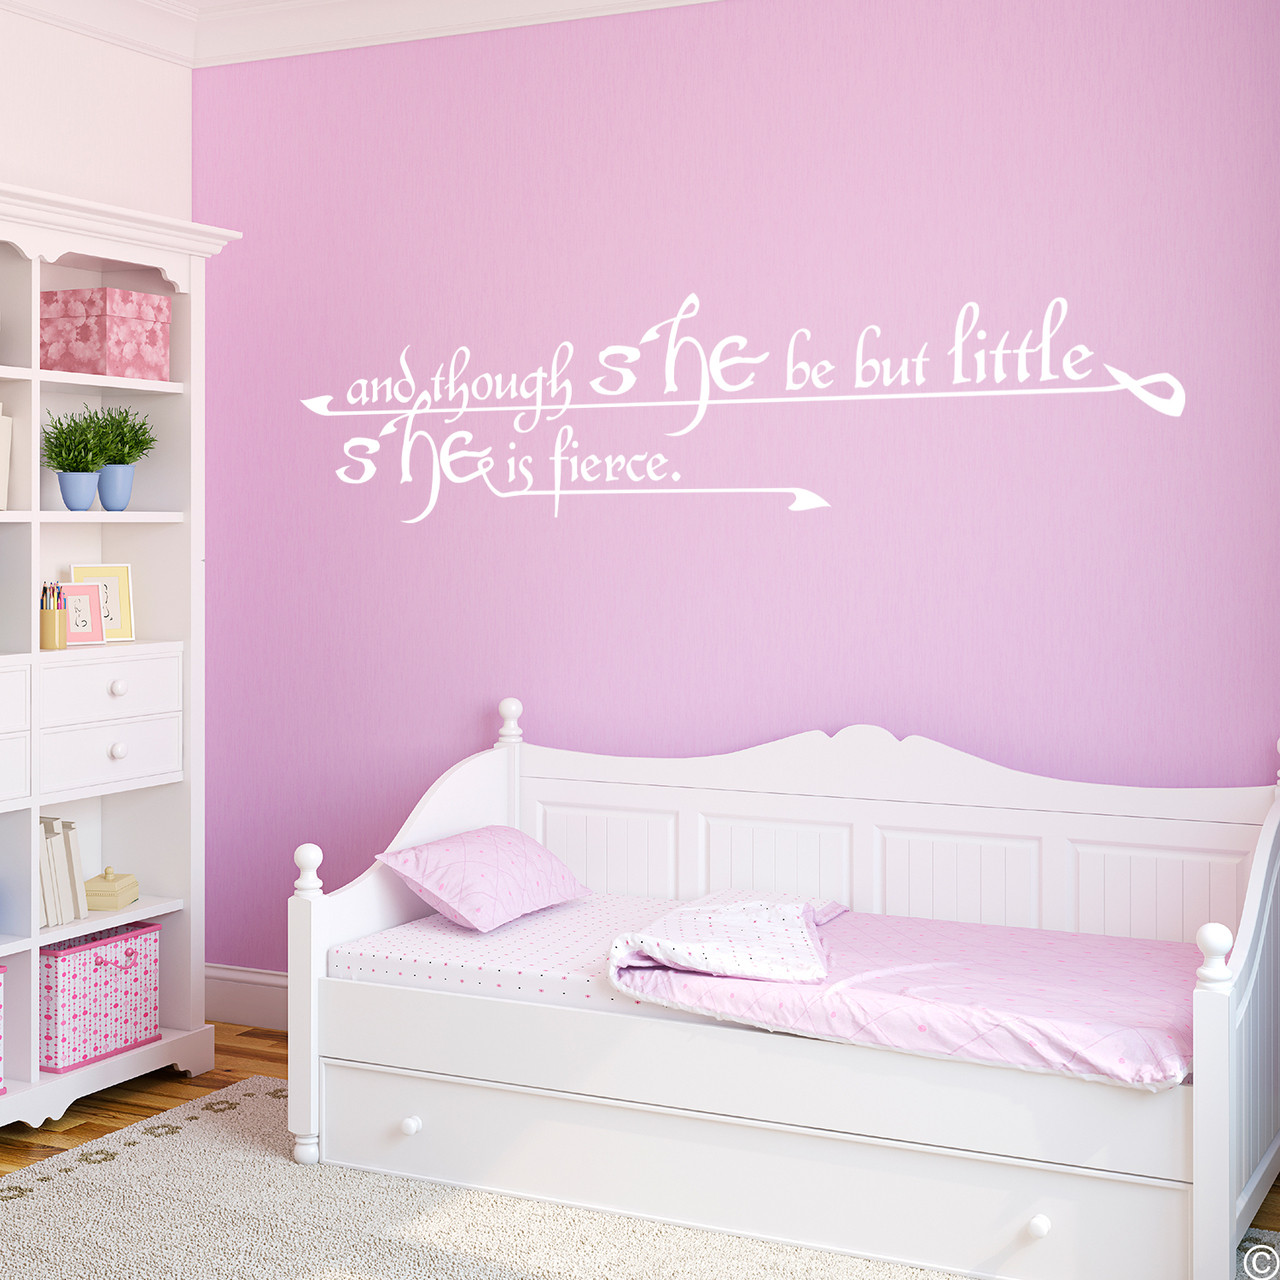 And Though She Be But Little She Is Fierce Vinyl Decal  280 Butterflies